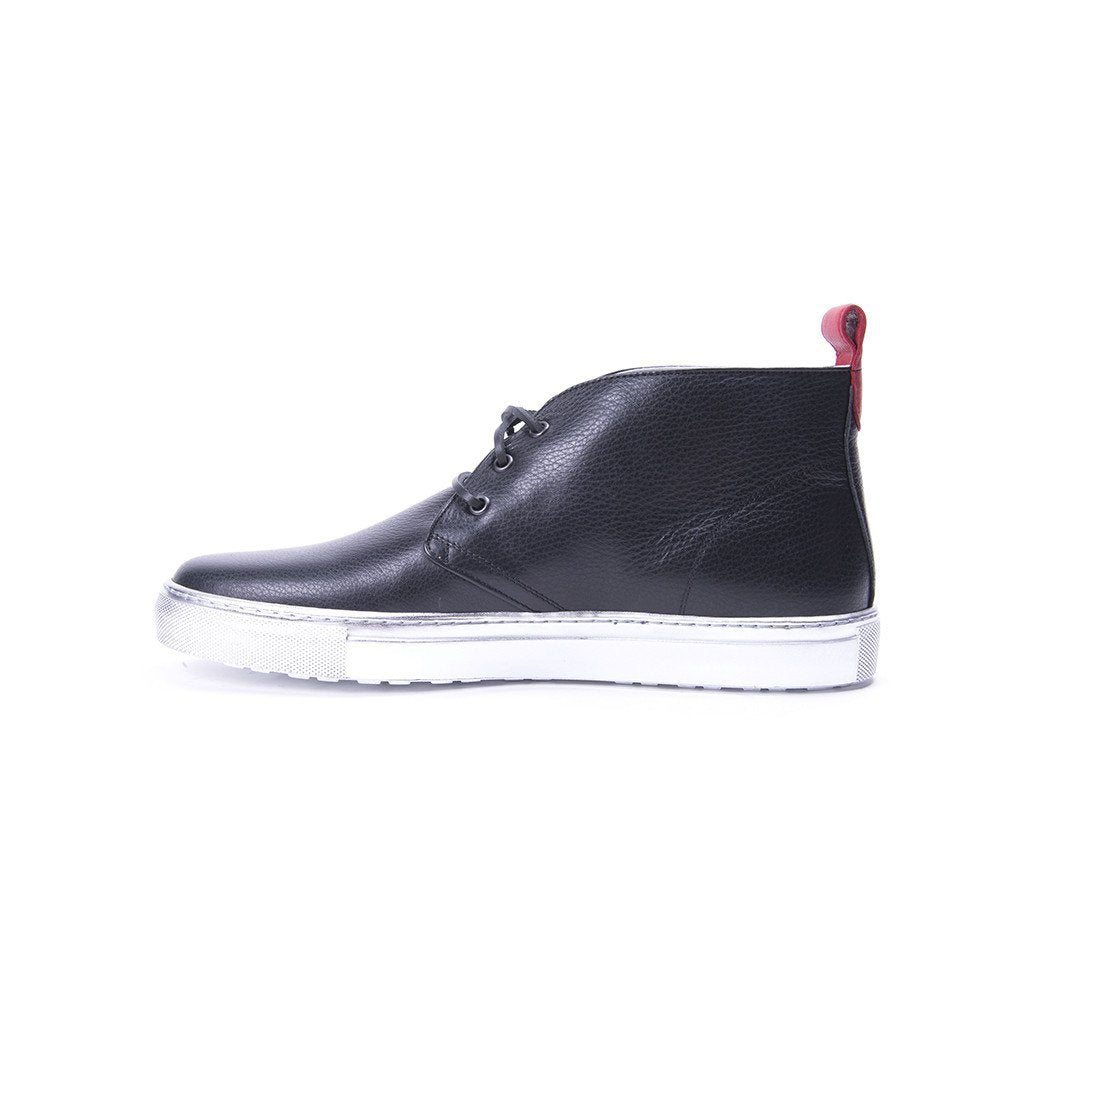 Black Chukka with Silver Sole